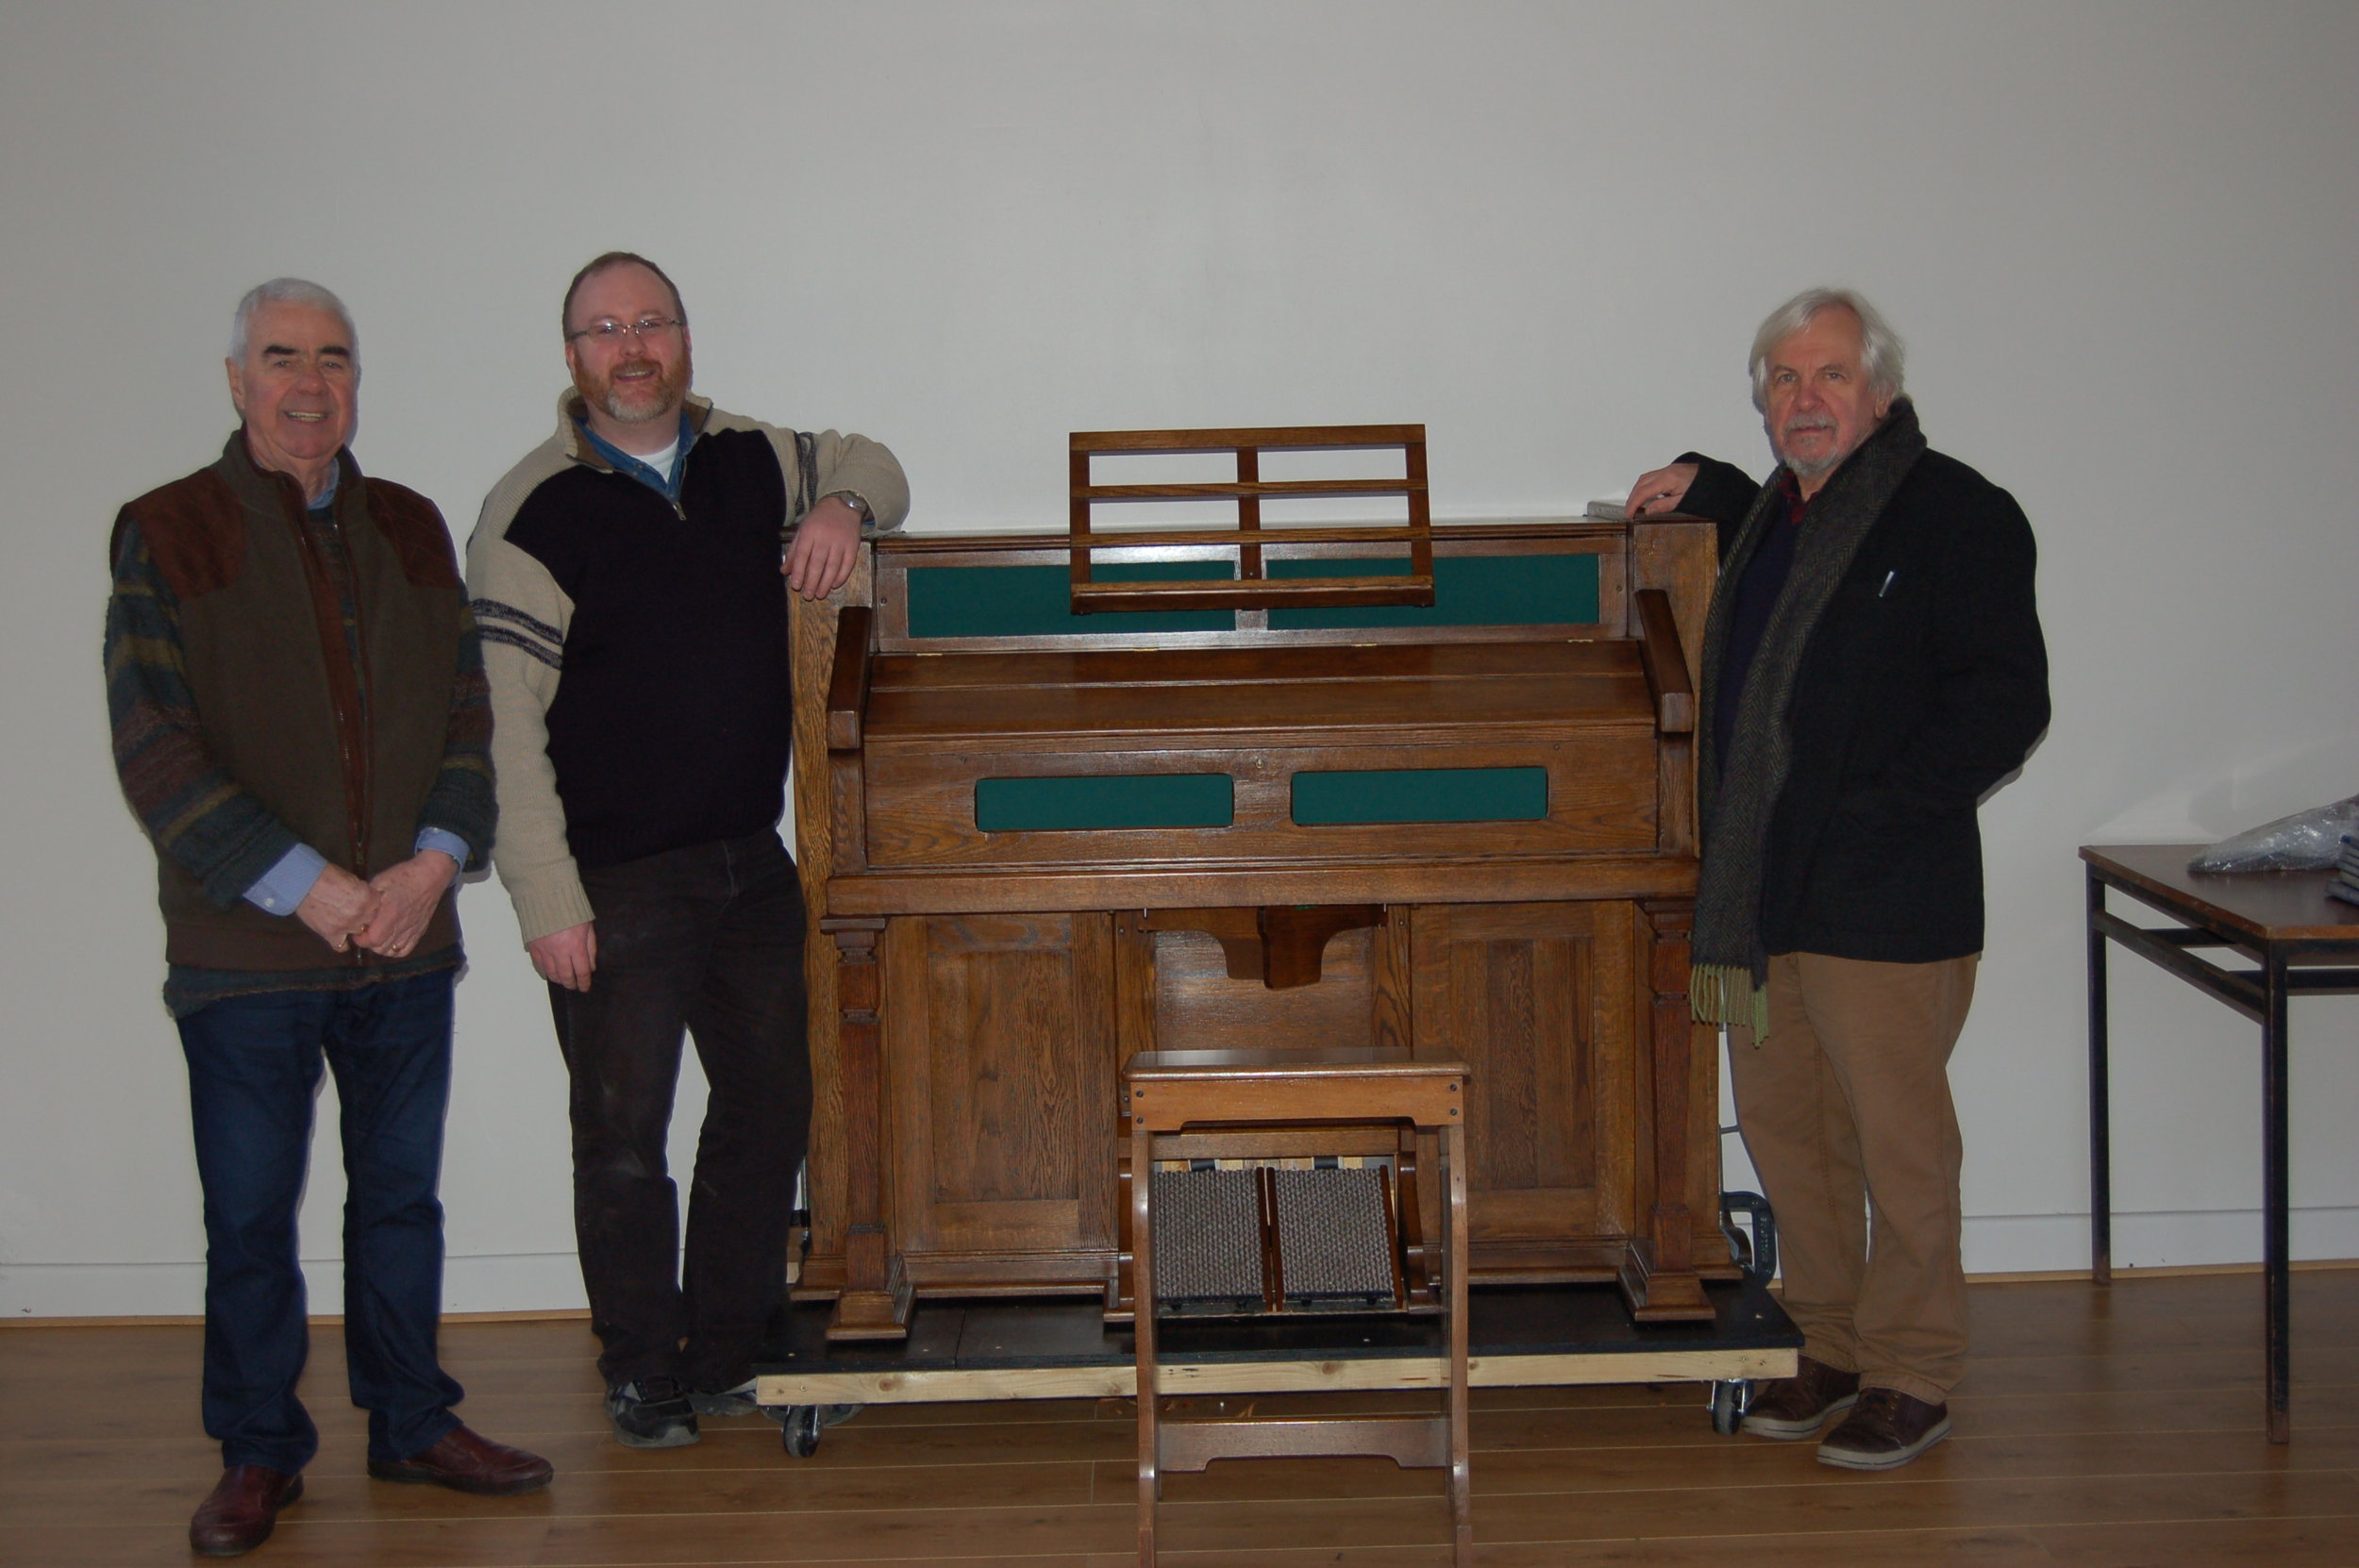 Dick, Fr. Darragh and Mick with my latest restored Estey Model O.